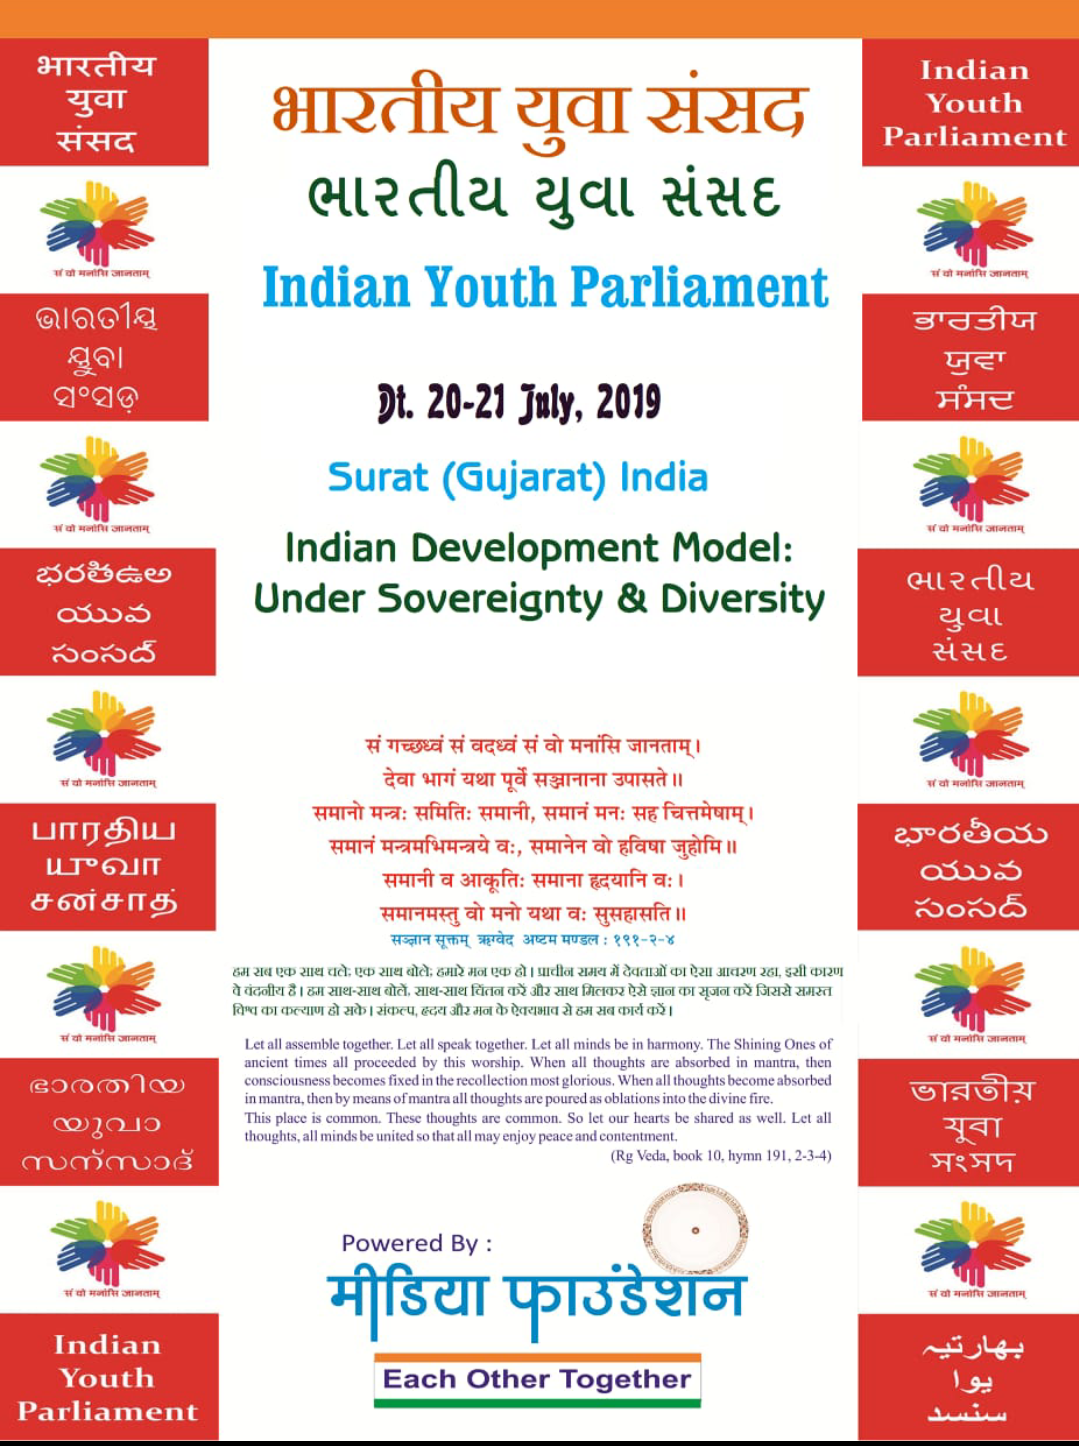 Conference on Indian Development Model by Indian Youth Parliament @ Surat, Gujrat [July 20-21]: Apply by July 7